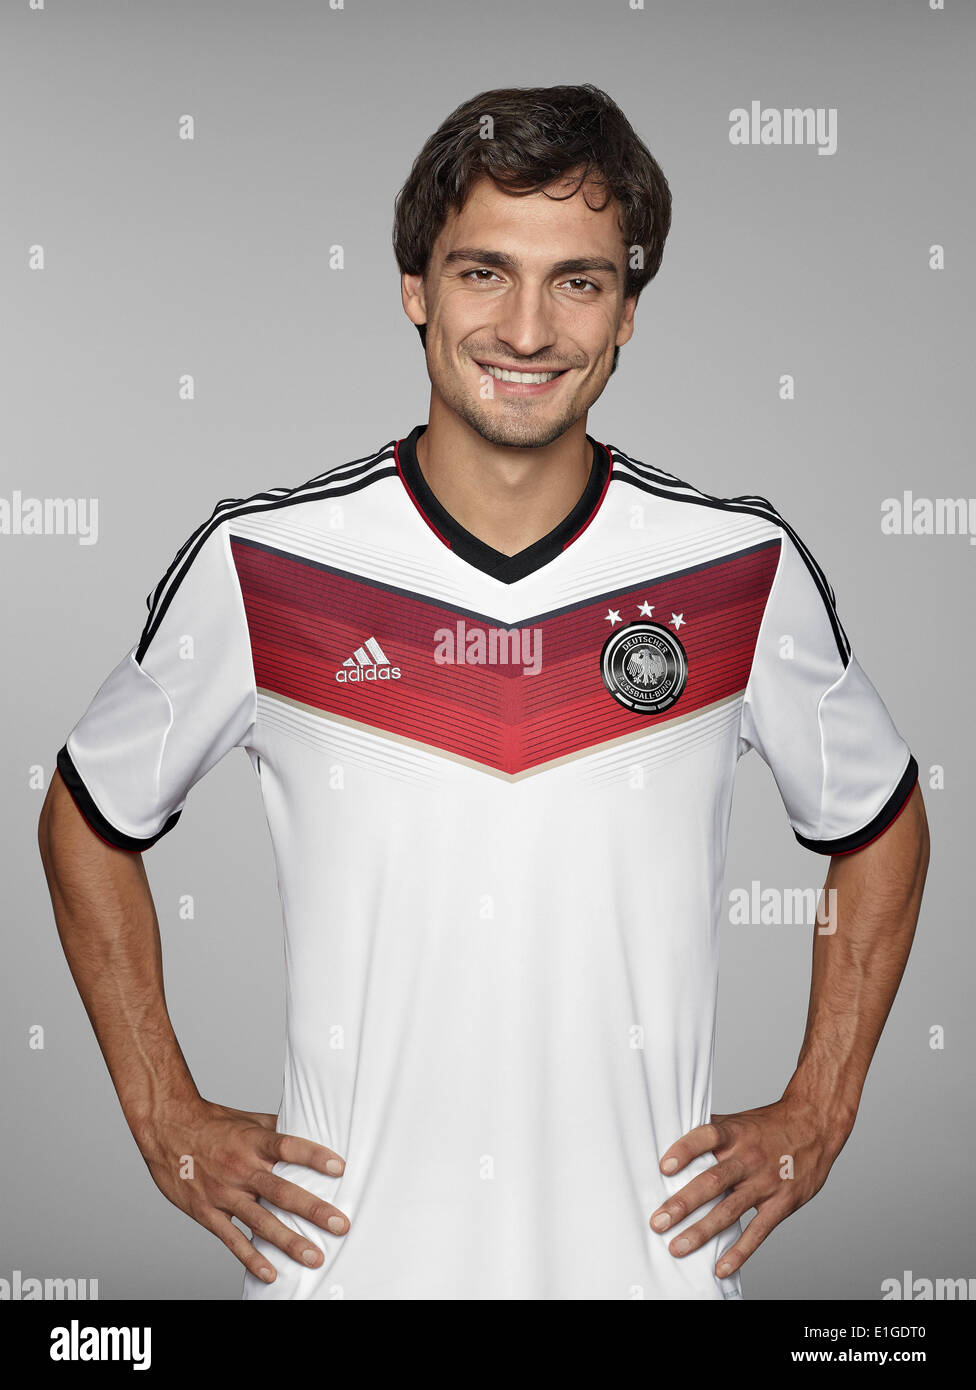 FIFA World Cup 2014 - photocall Team Germany, 24 May 2014 in Passeier, Italy: Mats Hummels. Photo credit: Bongarts/Getty Images/German Football Association/dpa (editorial use only) - Stock Image